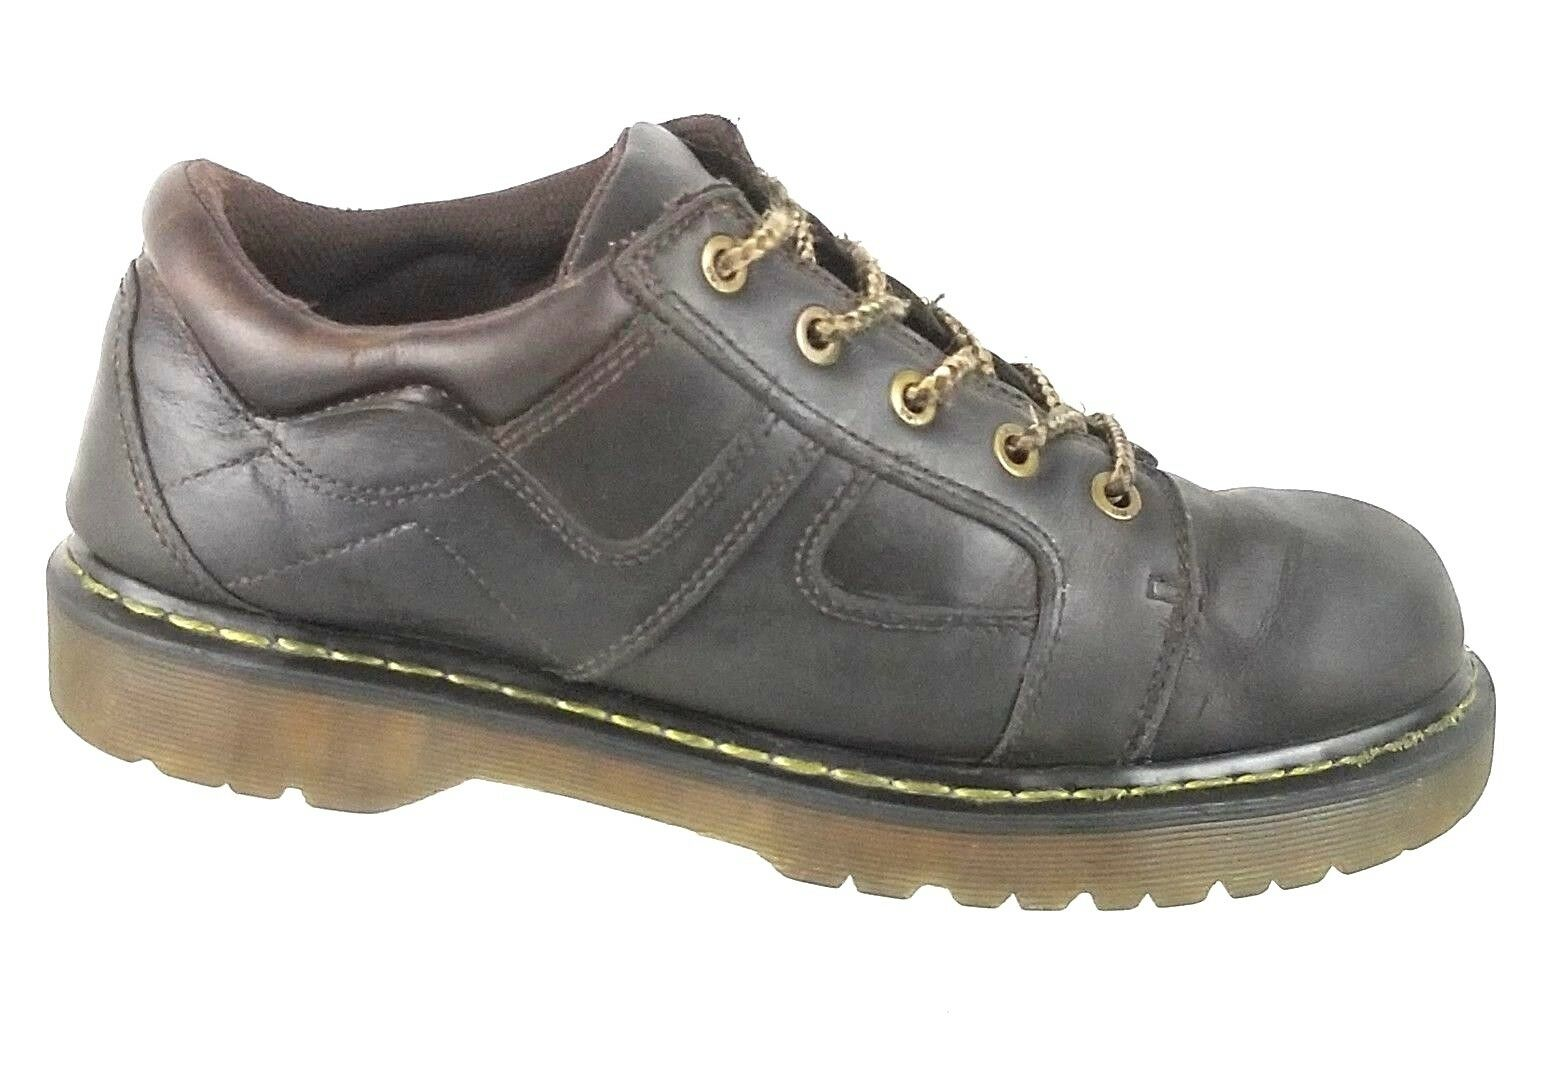 Dr. Doc Marten's Mens 12 M US 5 Eyelet Chunky Brown Leather shoes 9B08 BU004